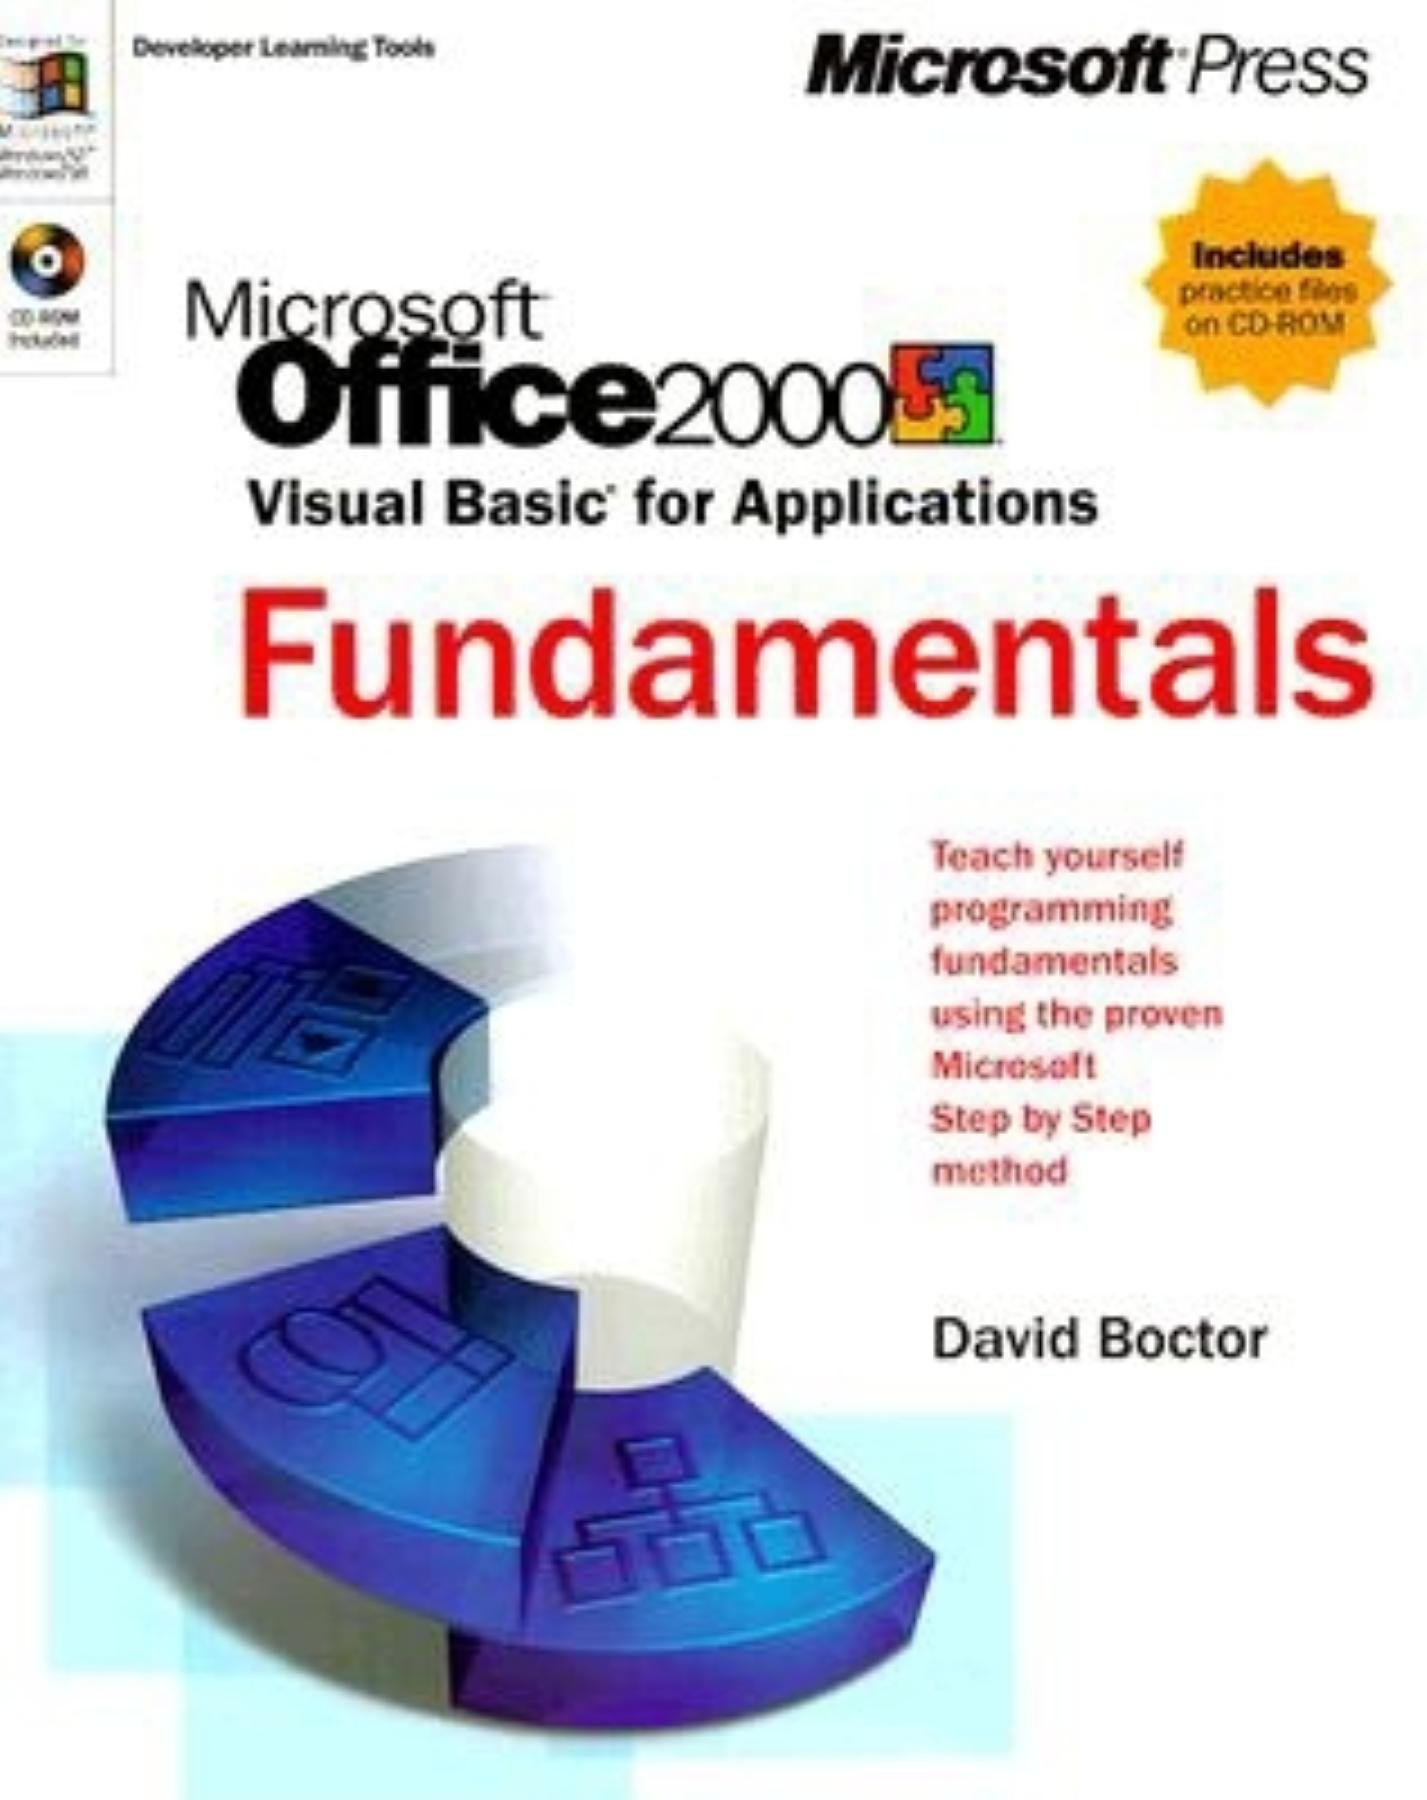 Microsoft Office 2000 Visual Basic for Applications Fundamentals (Developer Learning Tools)